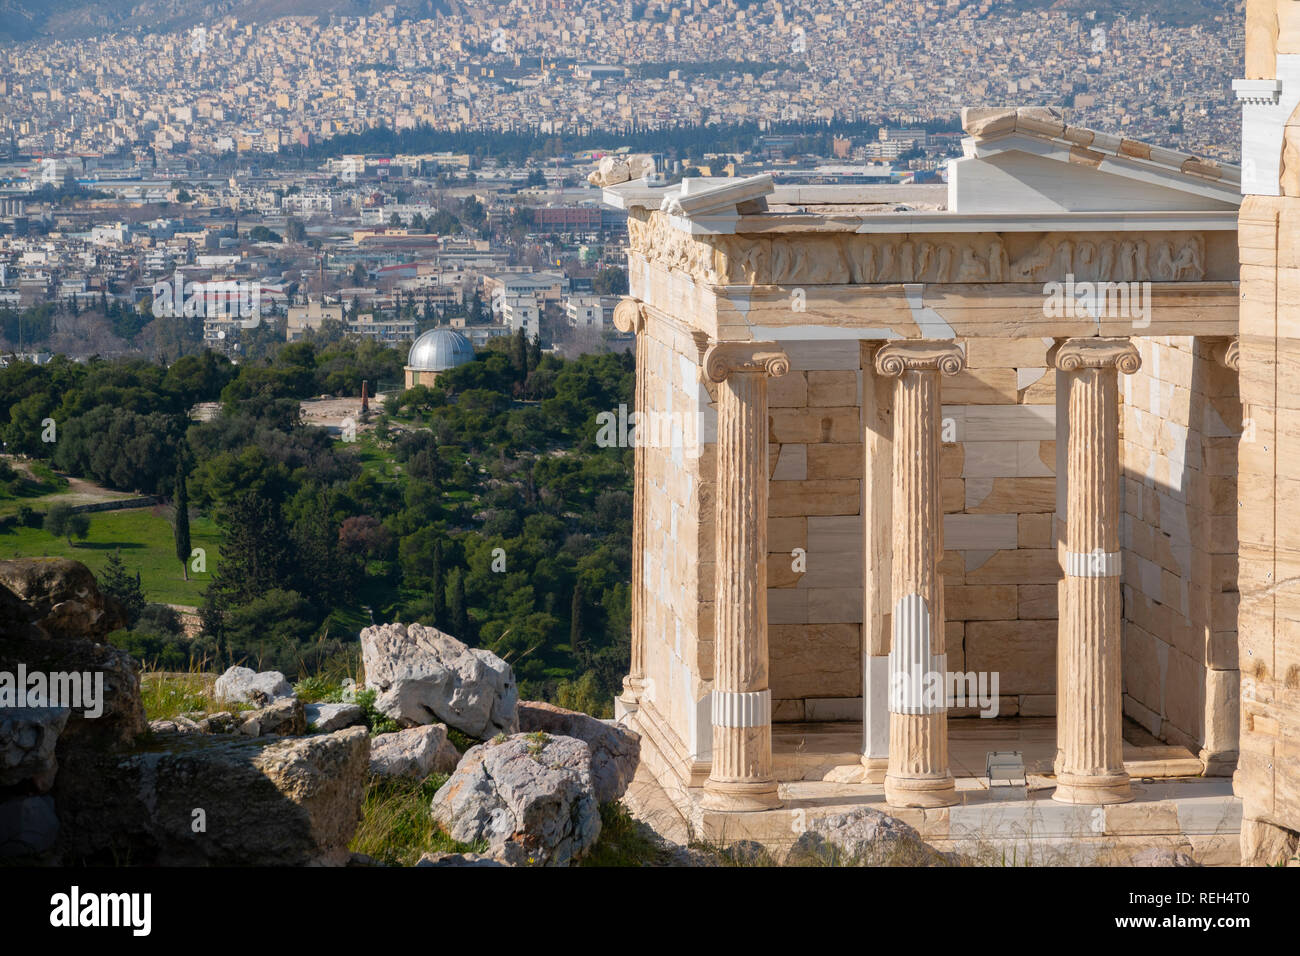 europe-greece-athens-athena-acropolis-part-of-the-propylaea-propylea-or-propylaia-gate-of-the-acropolis-REH4T0.jpg